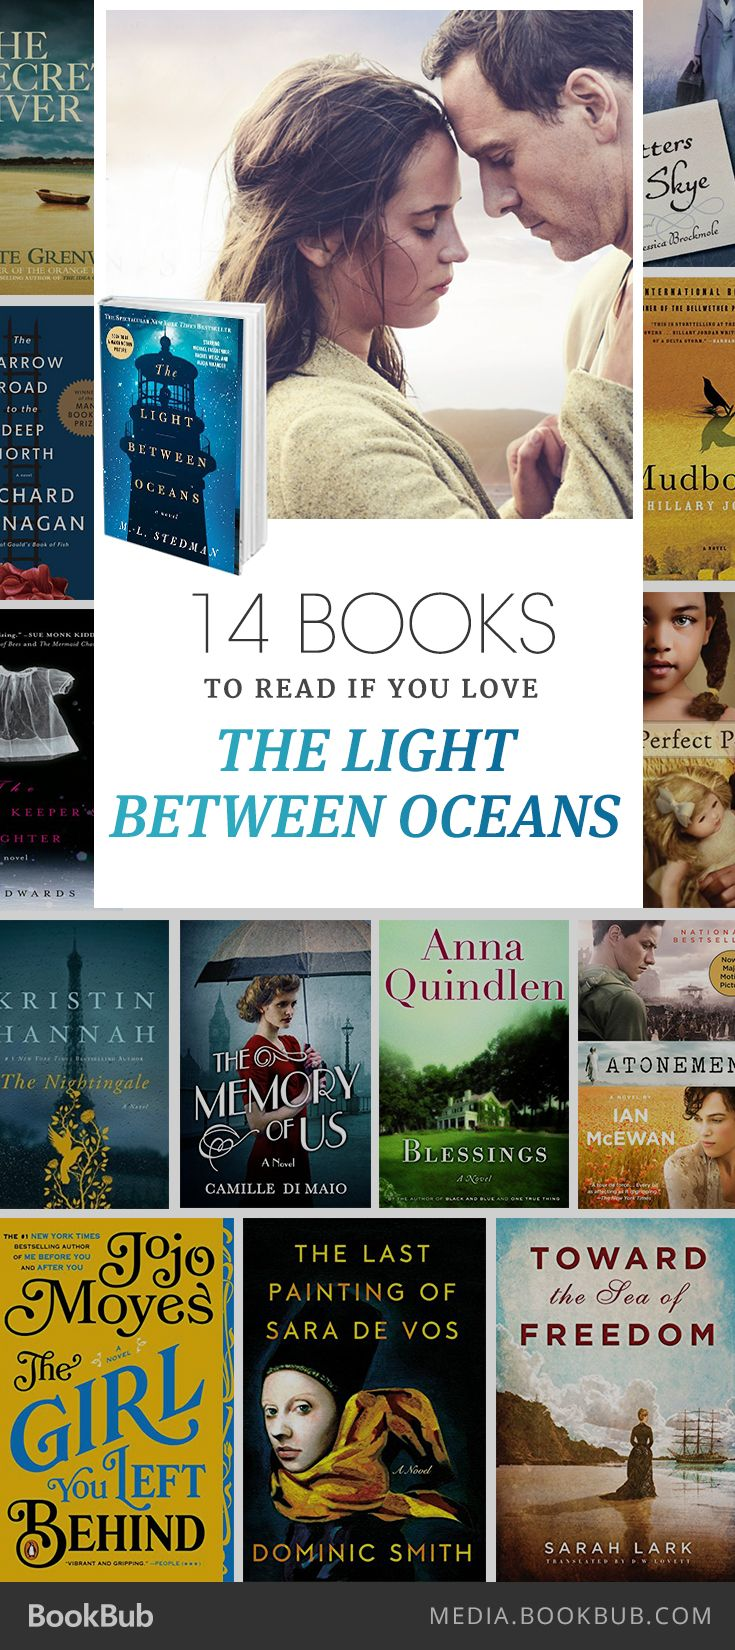 best ideas about anna quindlen confidence quotes 14 books to if you love the light between oceans